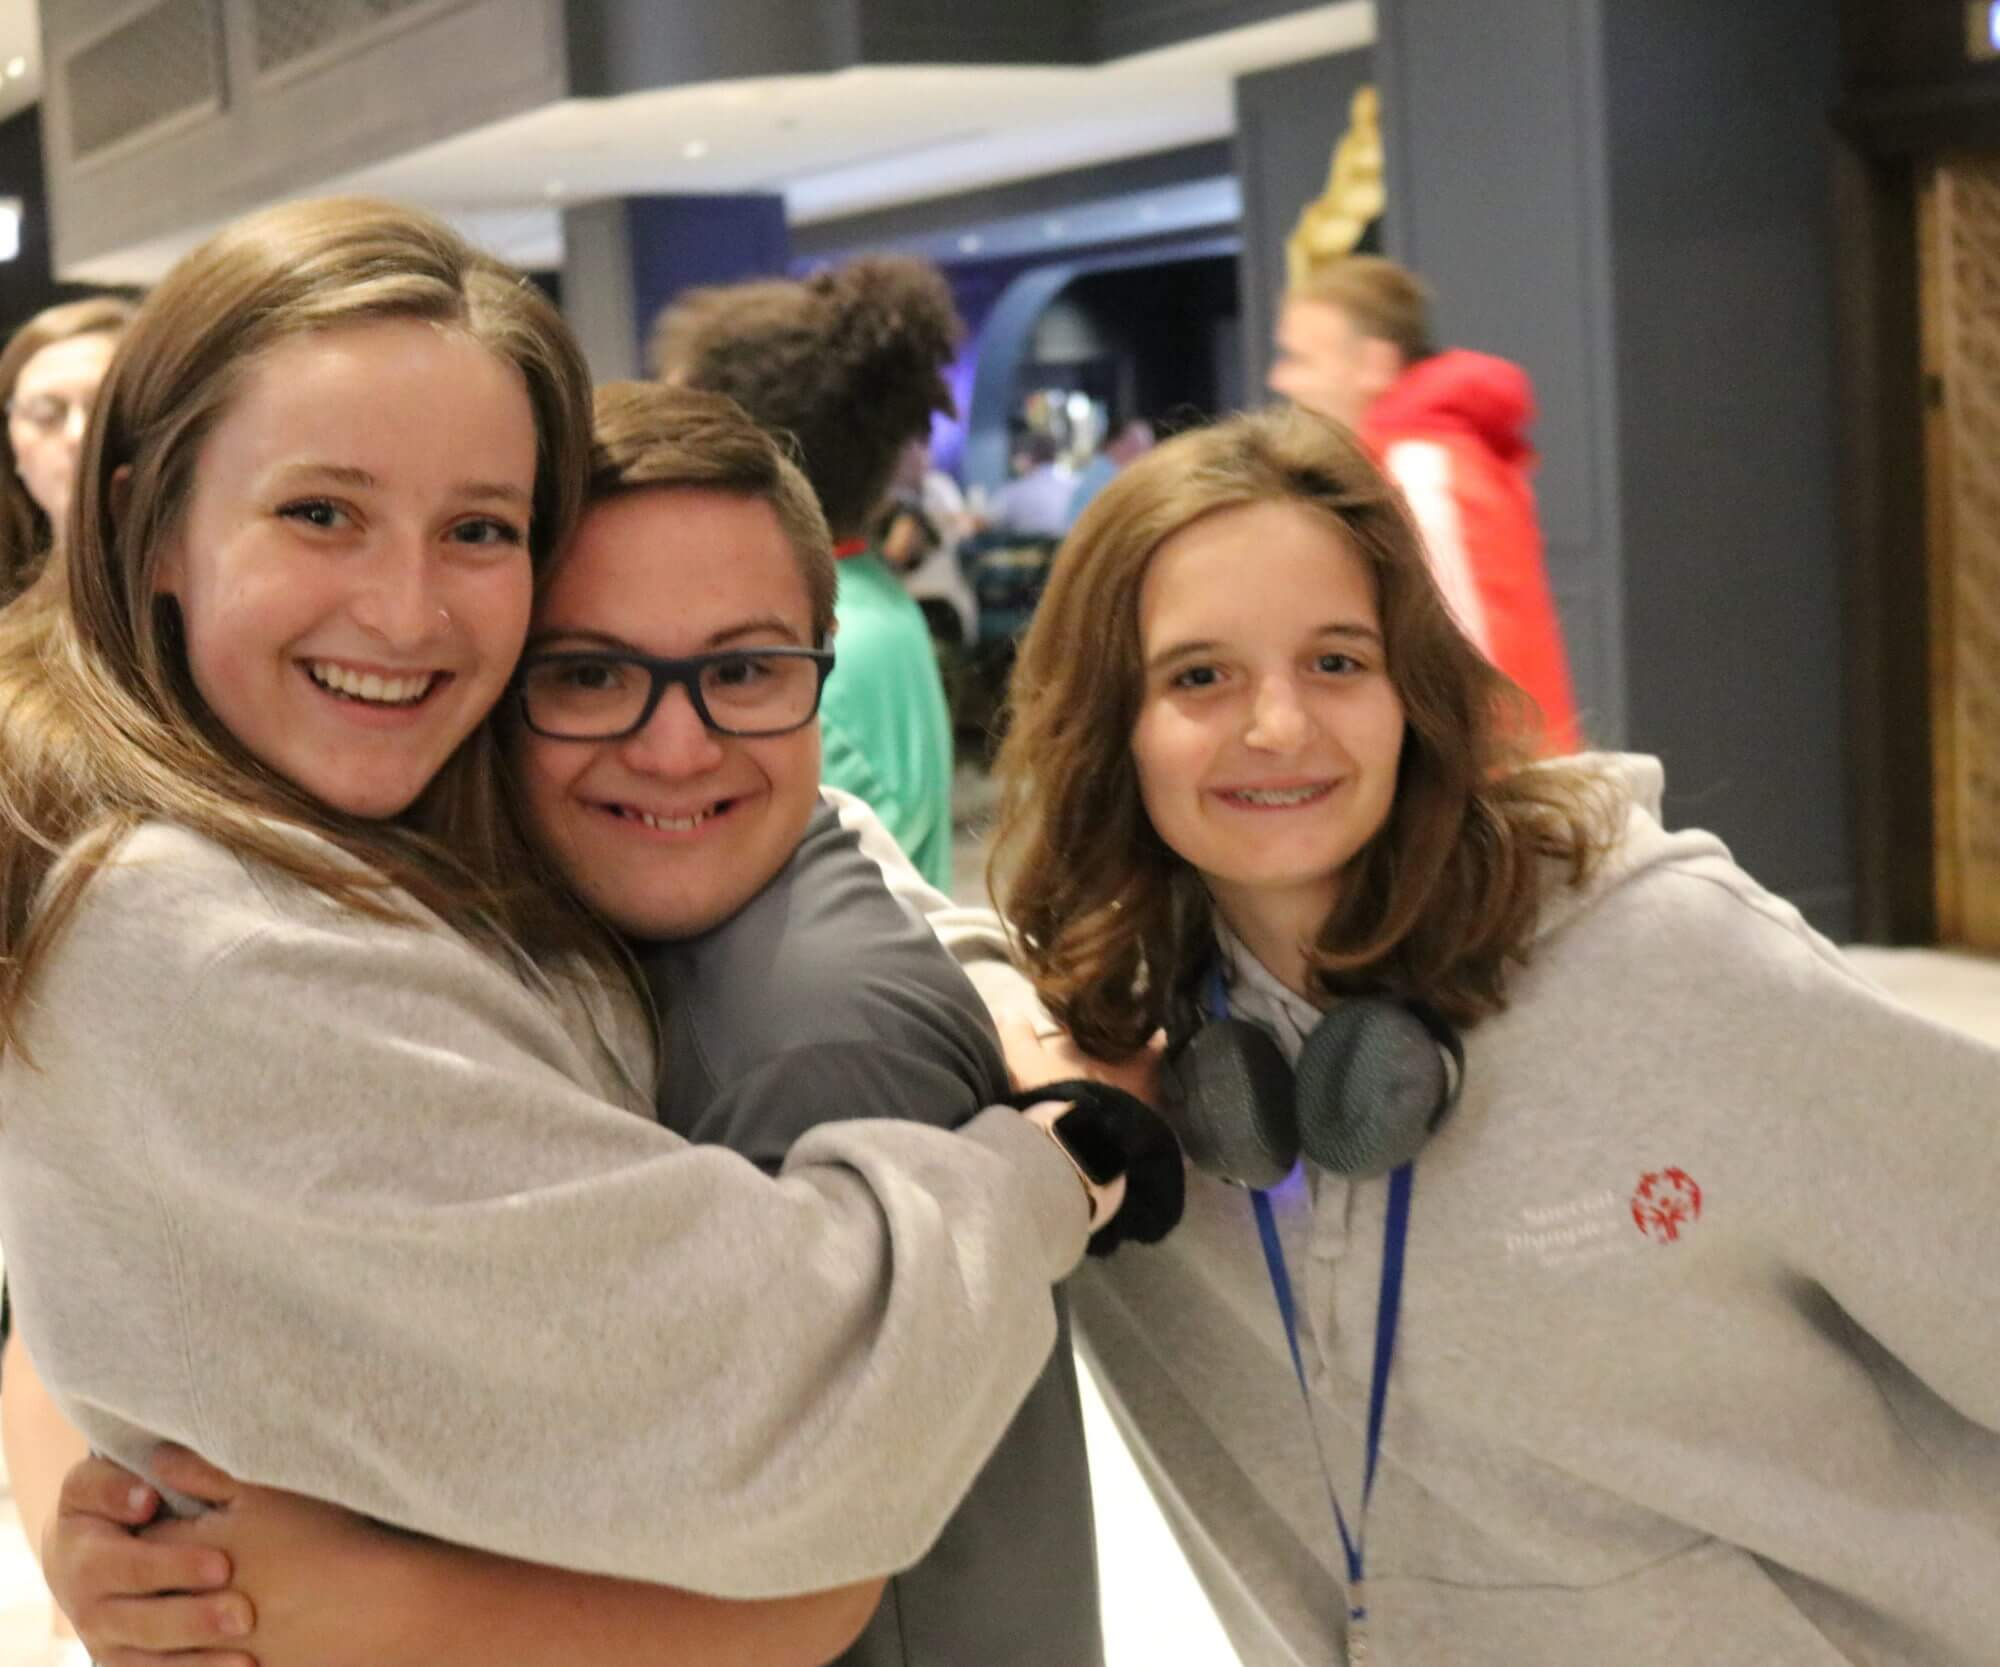 Students embracing at an Inclusive Youth Leadership Summit